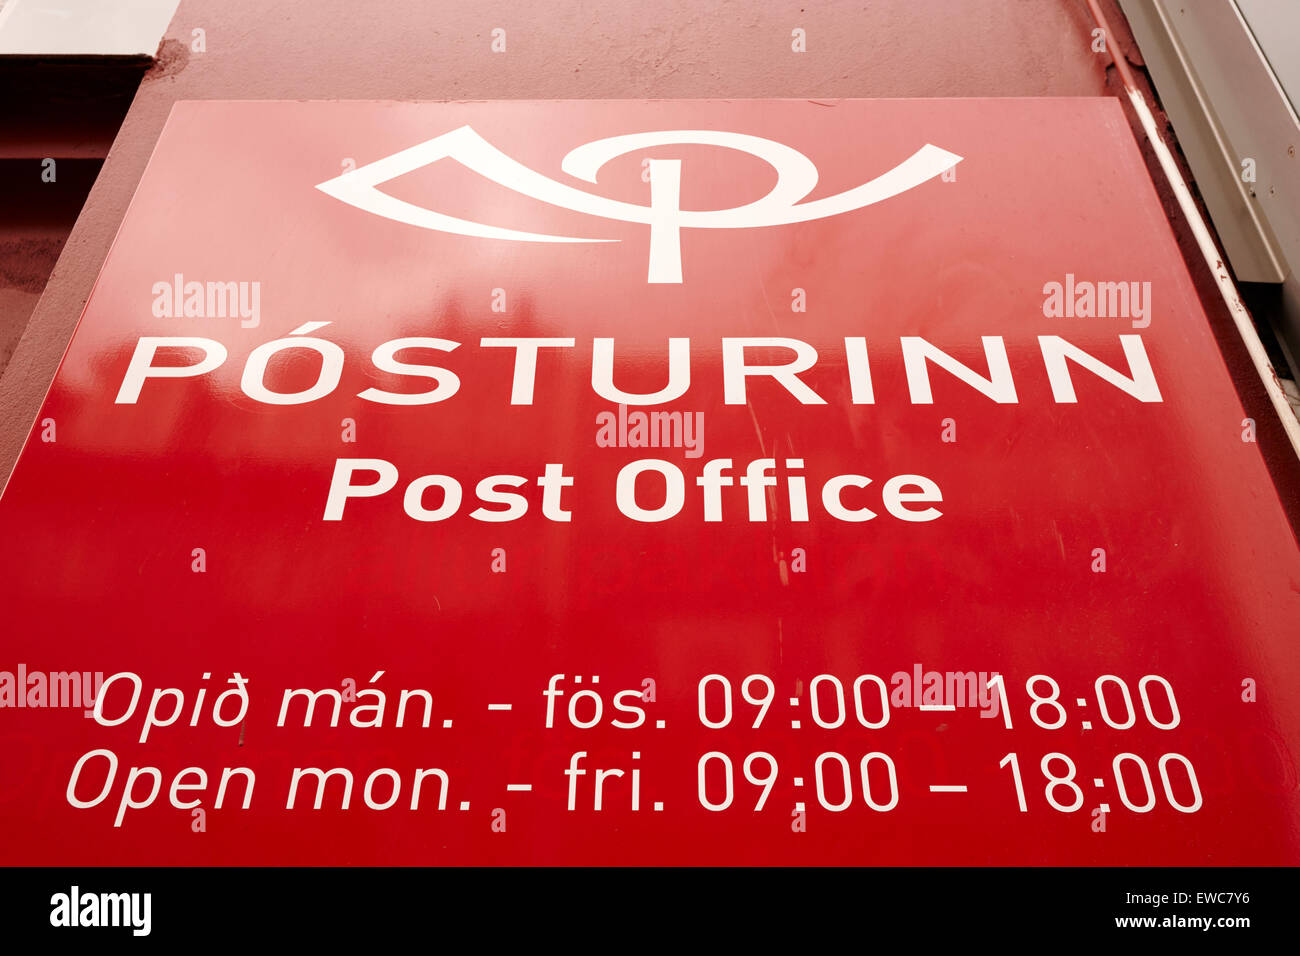 posturinn icelandic postal service post office opening hours sign ...